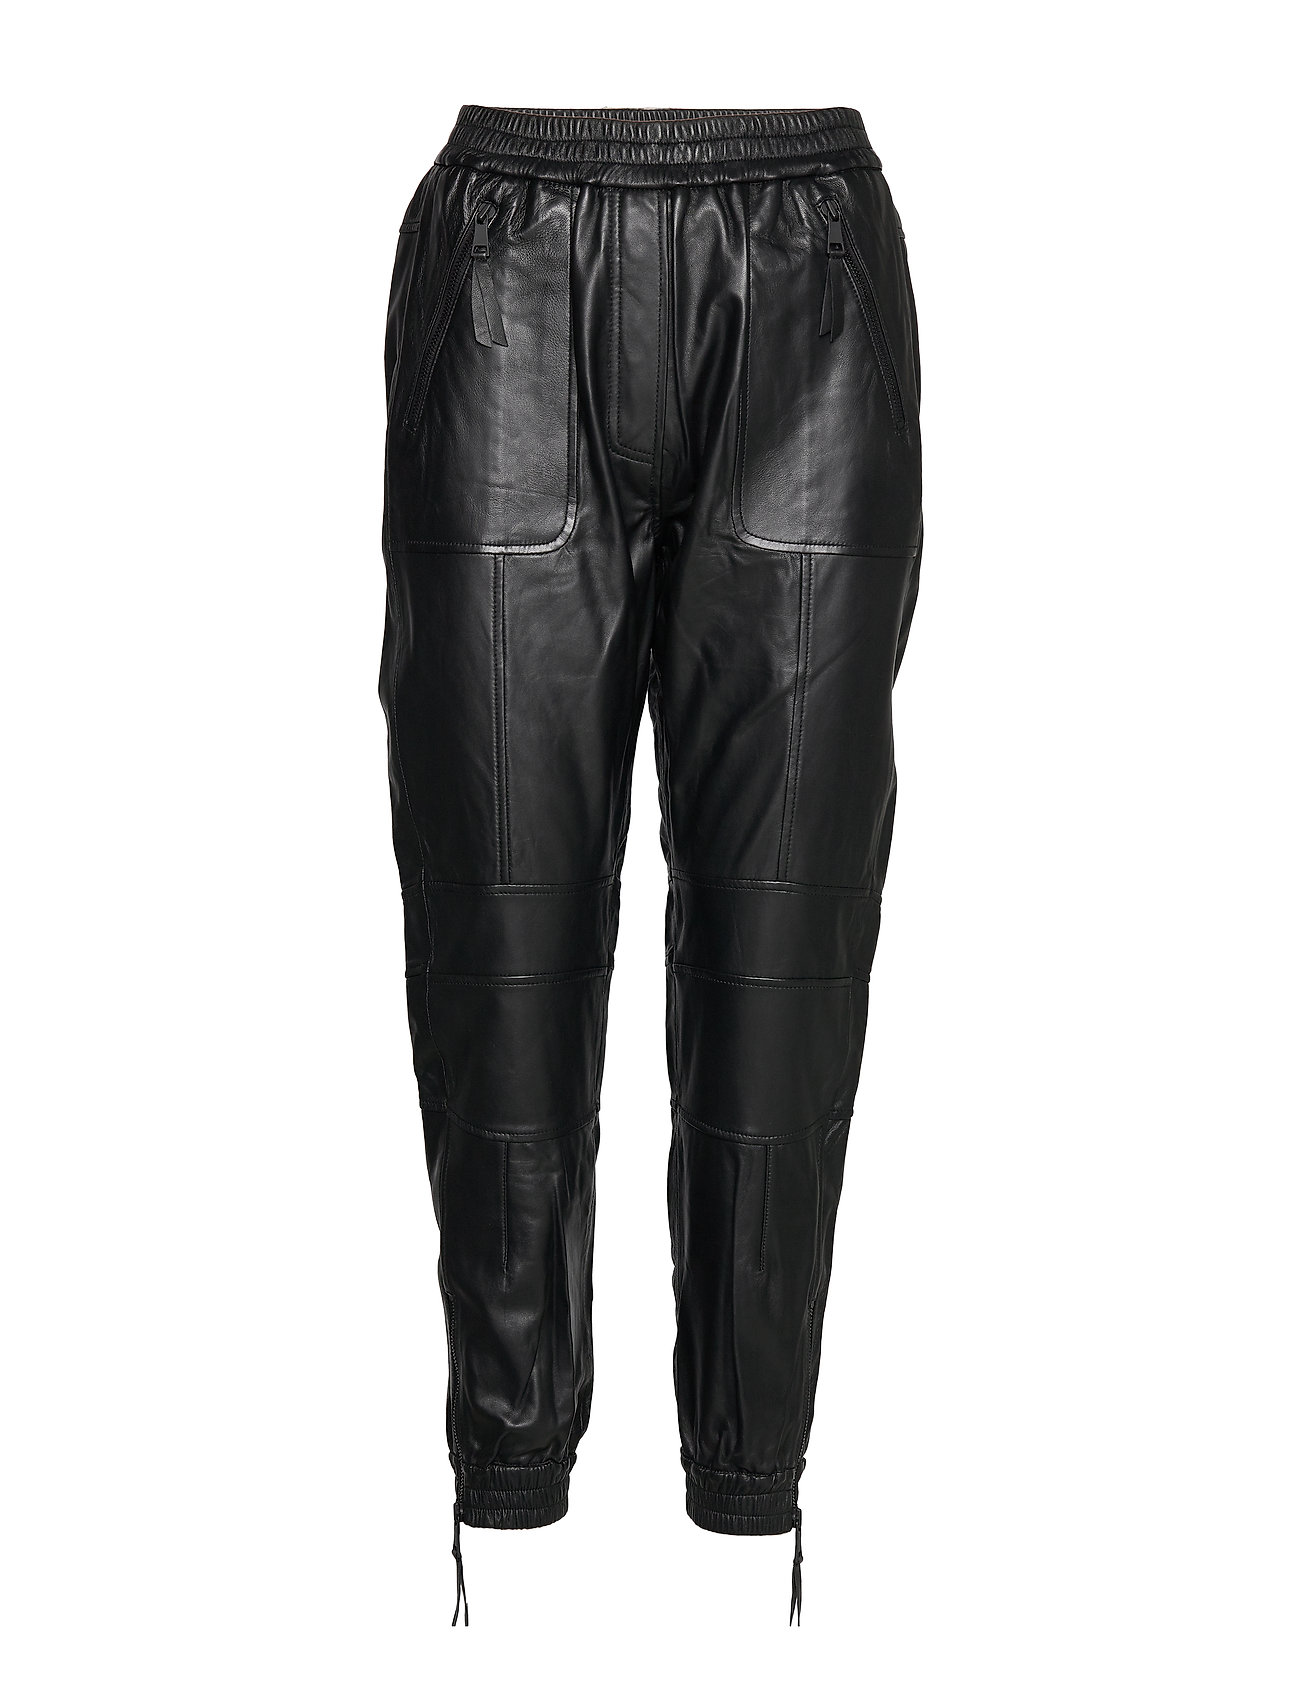 Image of Jadore Leather Leggings/Bukser Sort Munthe (3288147179)